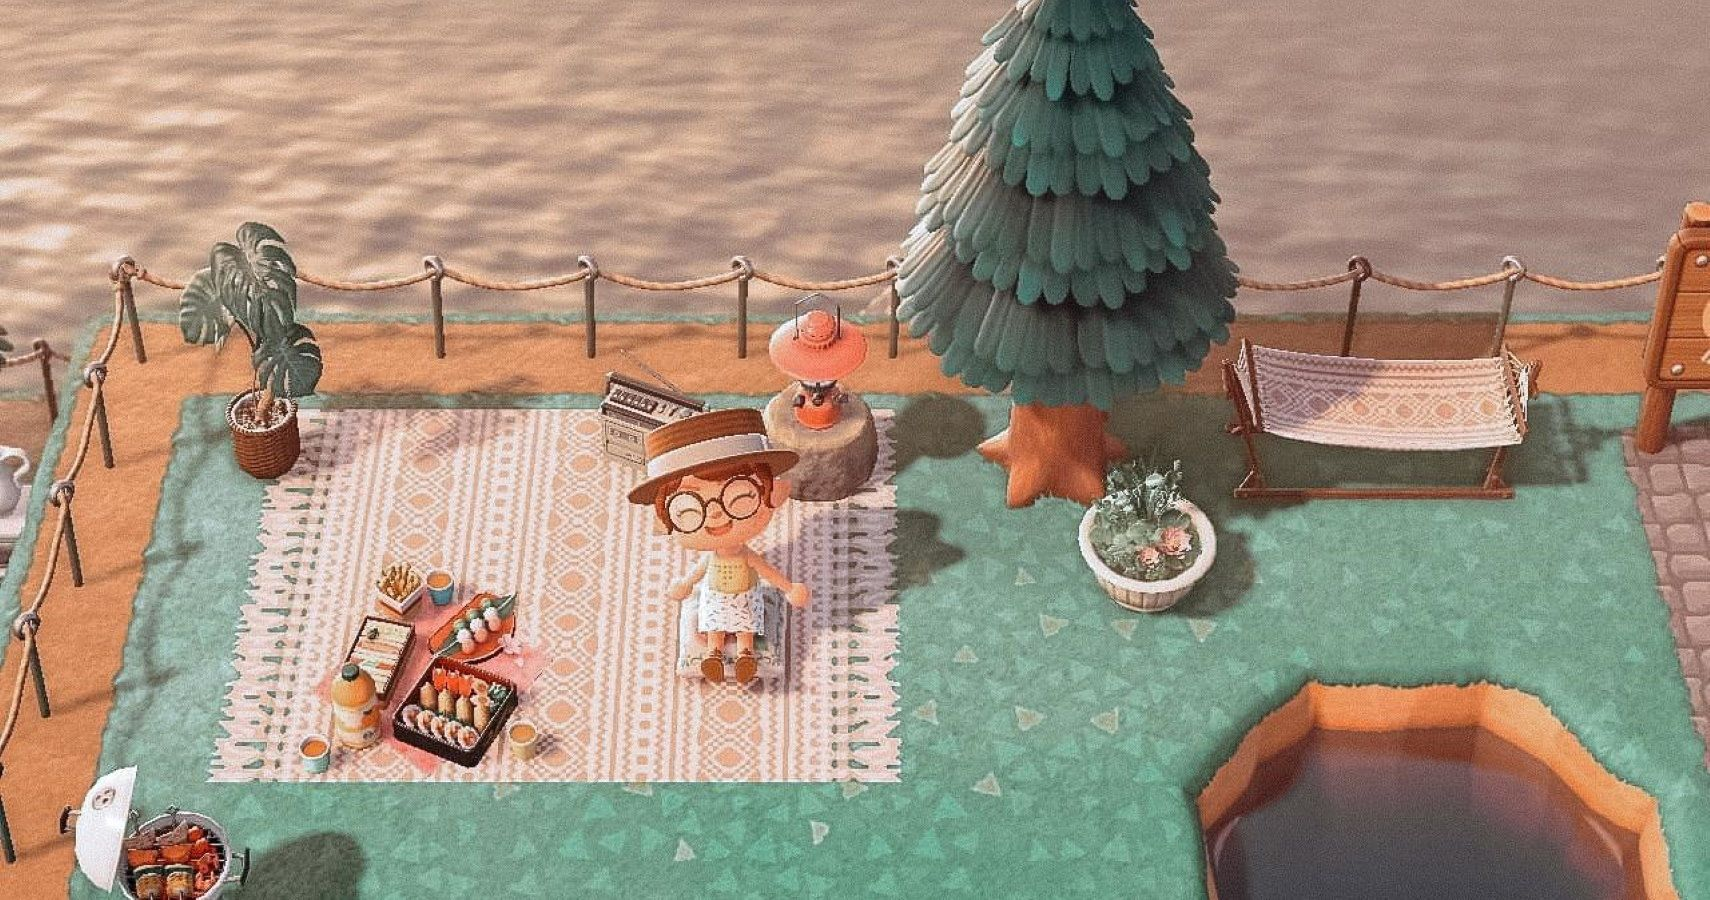 Animal Crossing New Horizons How To Add A Cozy Picnic Blanket